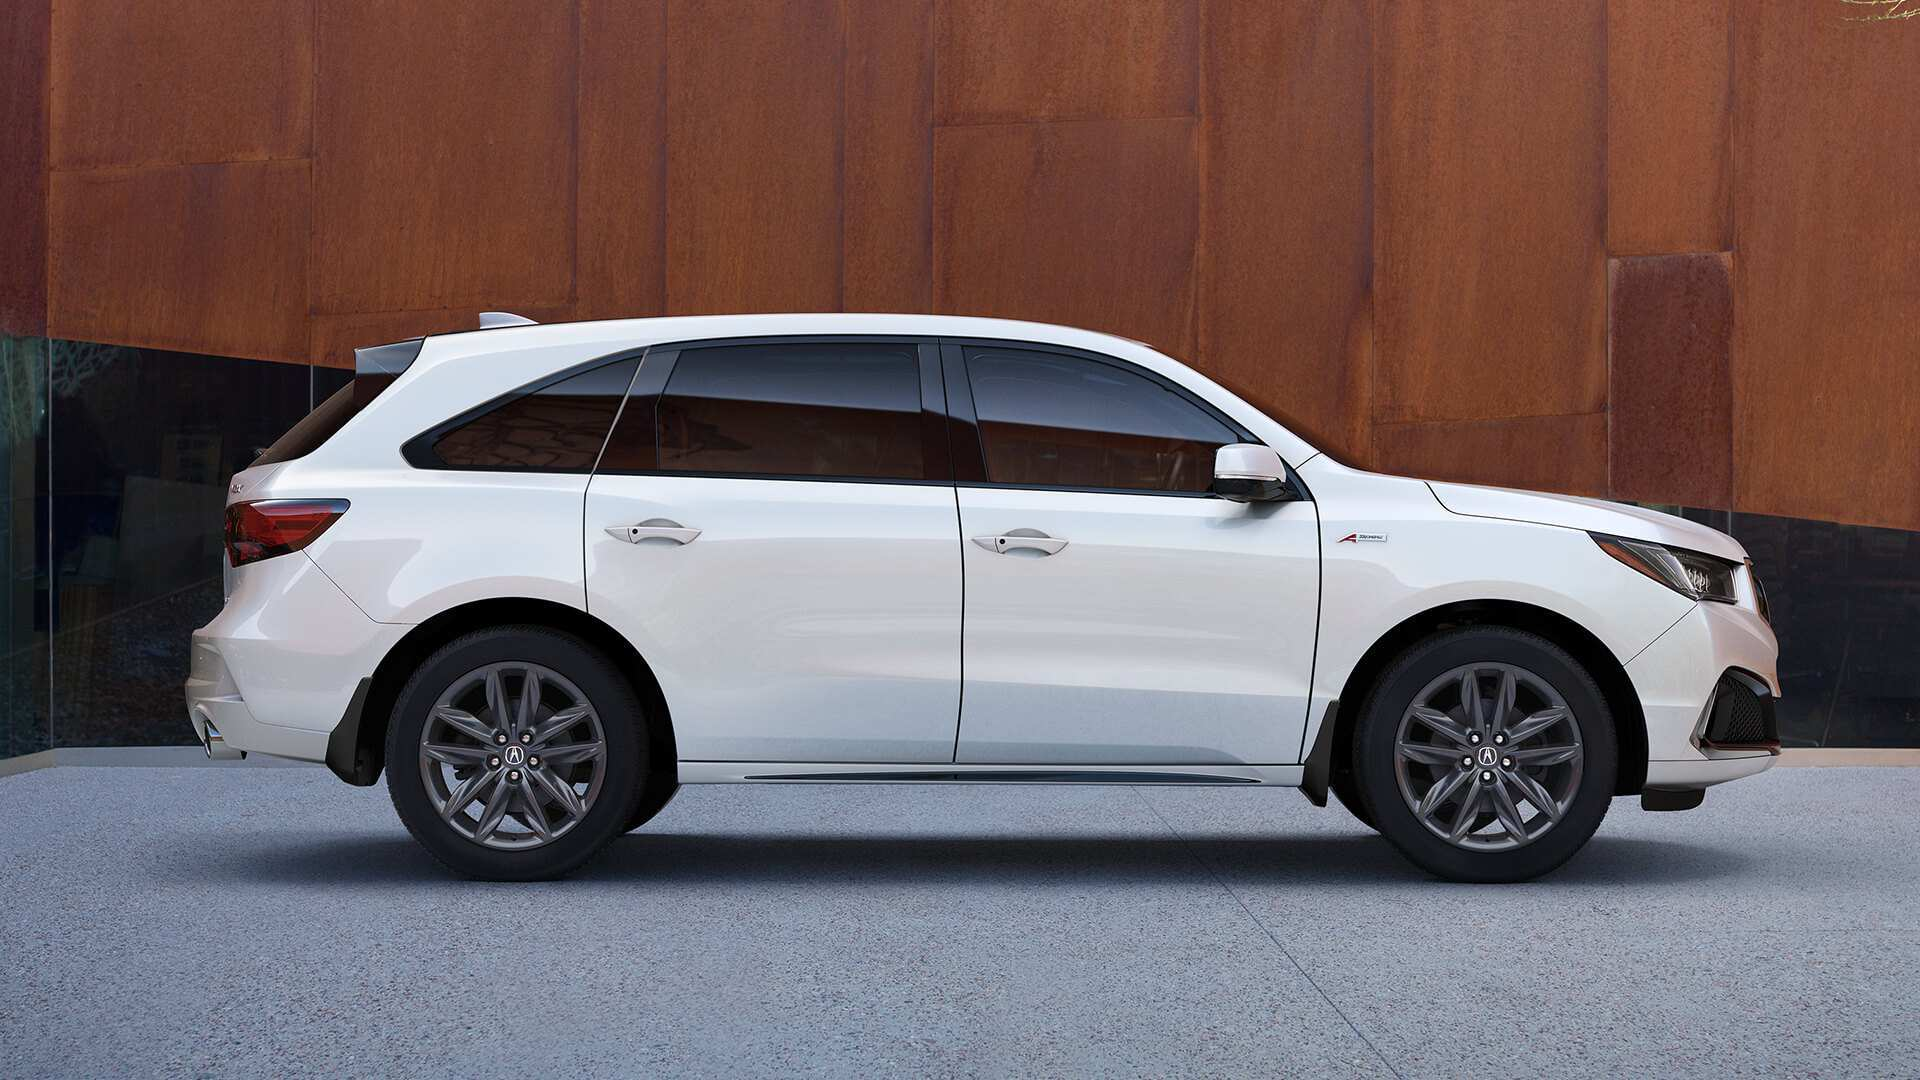 89 All New Acura Canada 2020 Mdx Redesign And Review